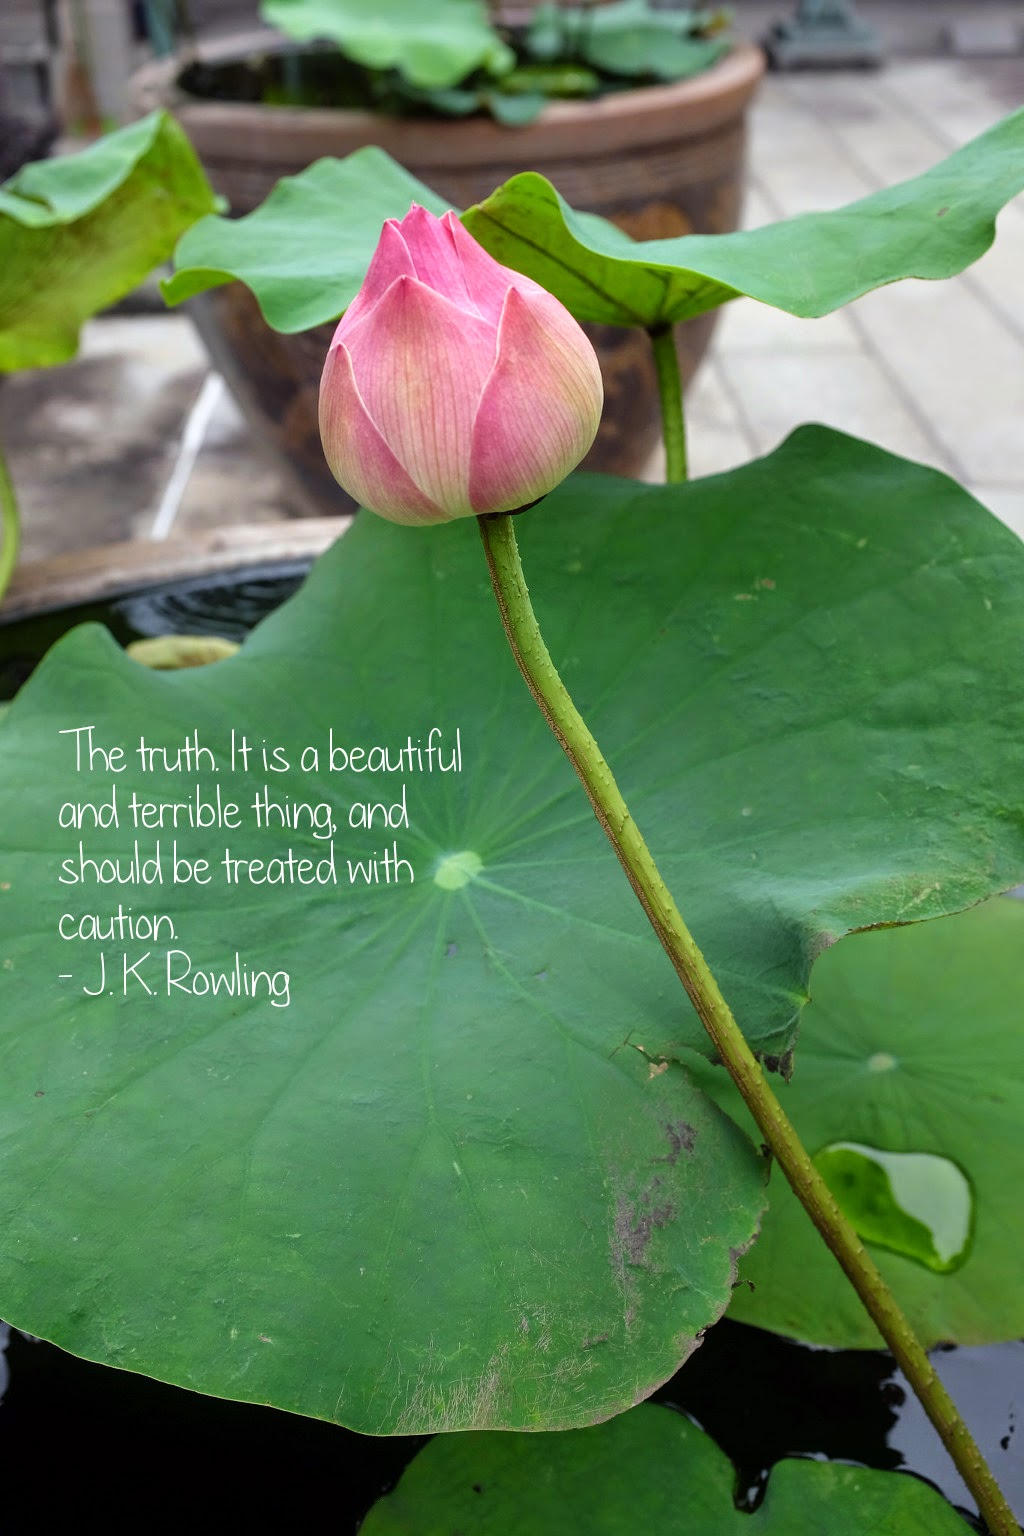 Thoughtsnlife.com : The truth. It is a beautiful and terrible thing, and should be treated with caution. - J. K. Rowling